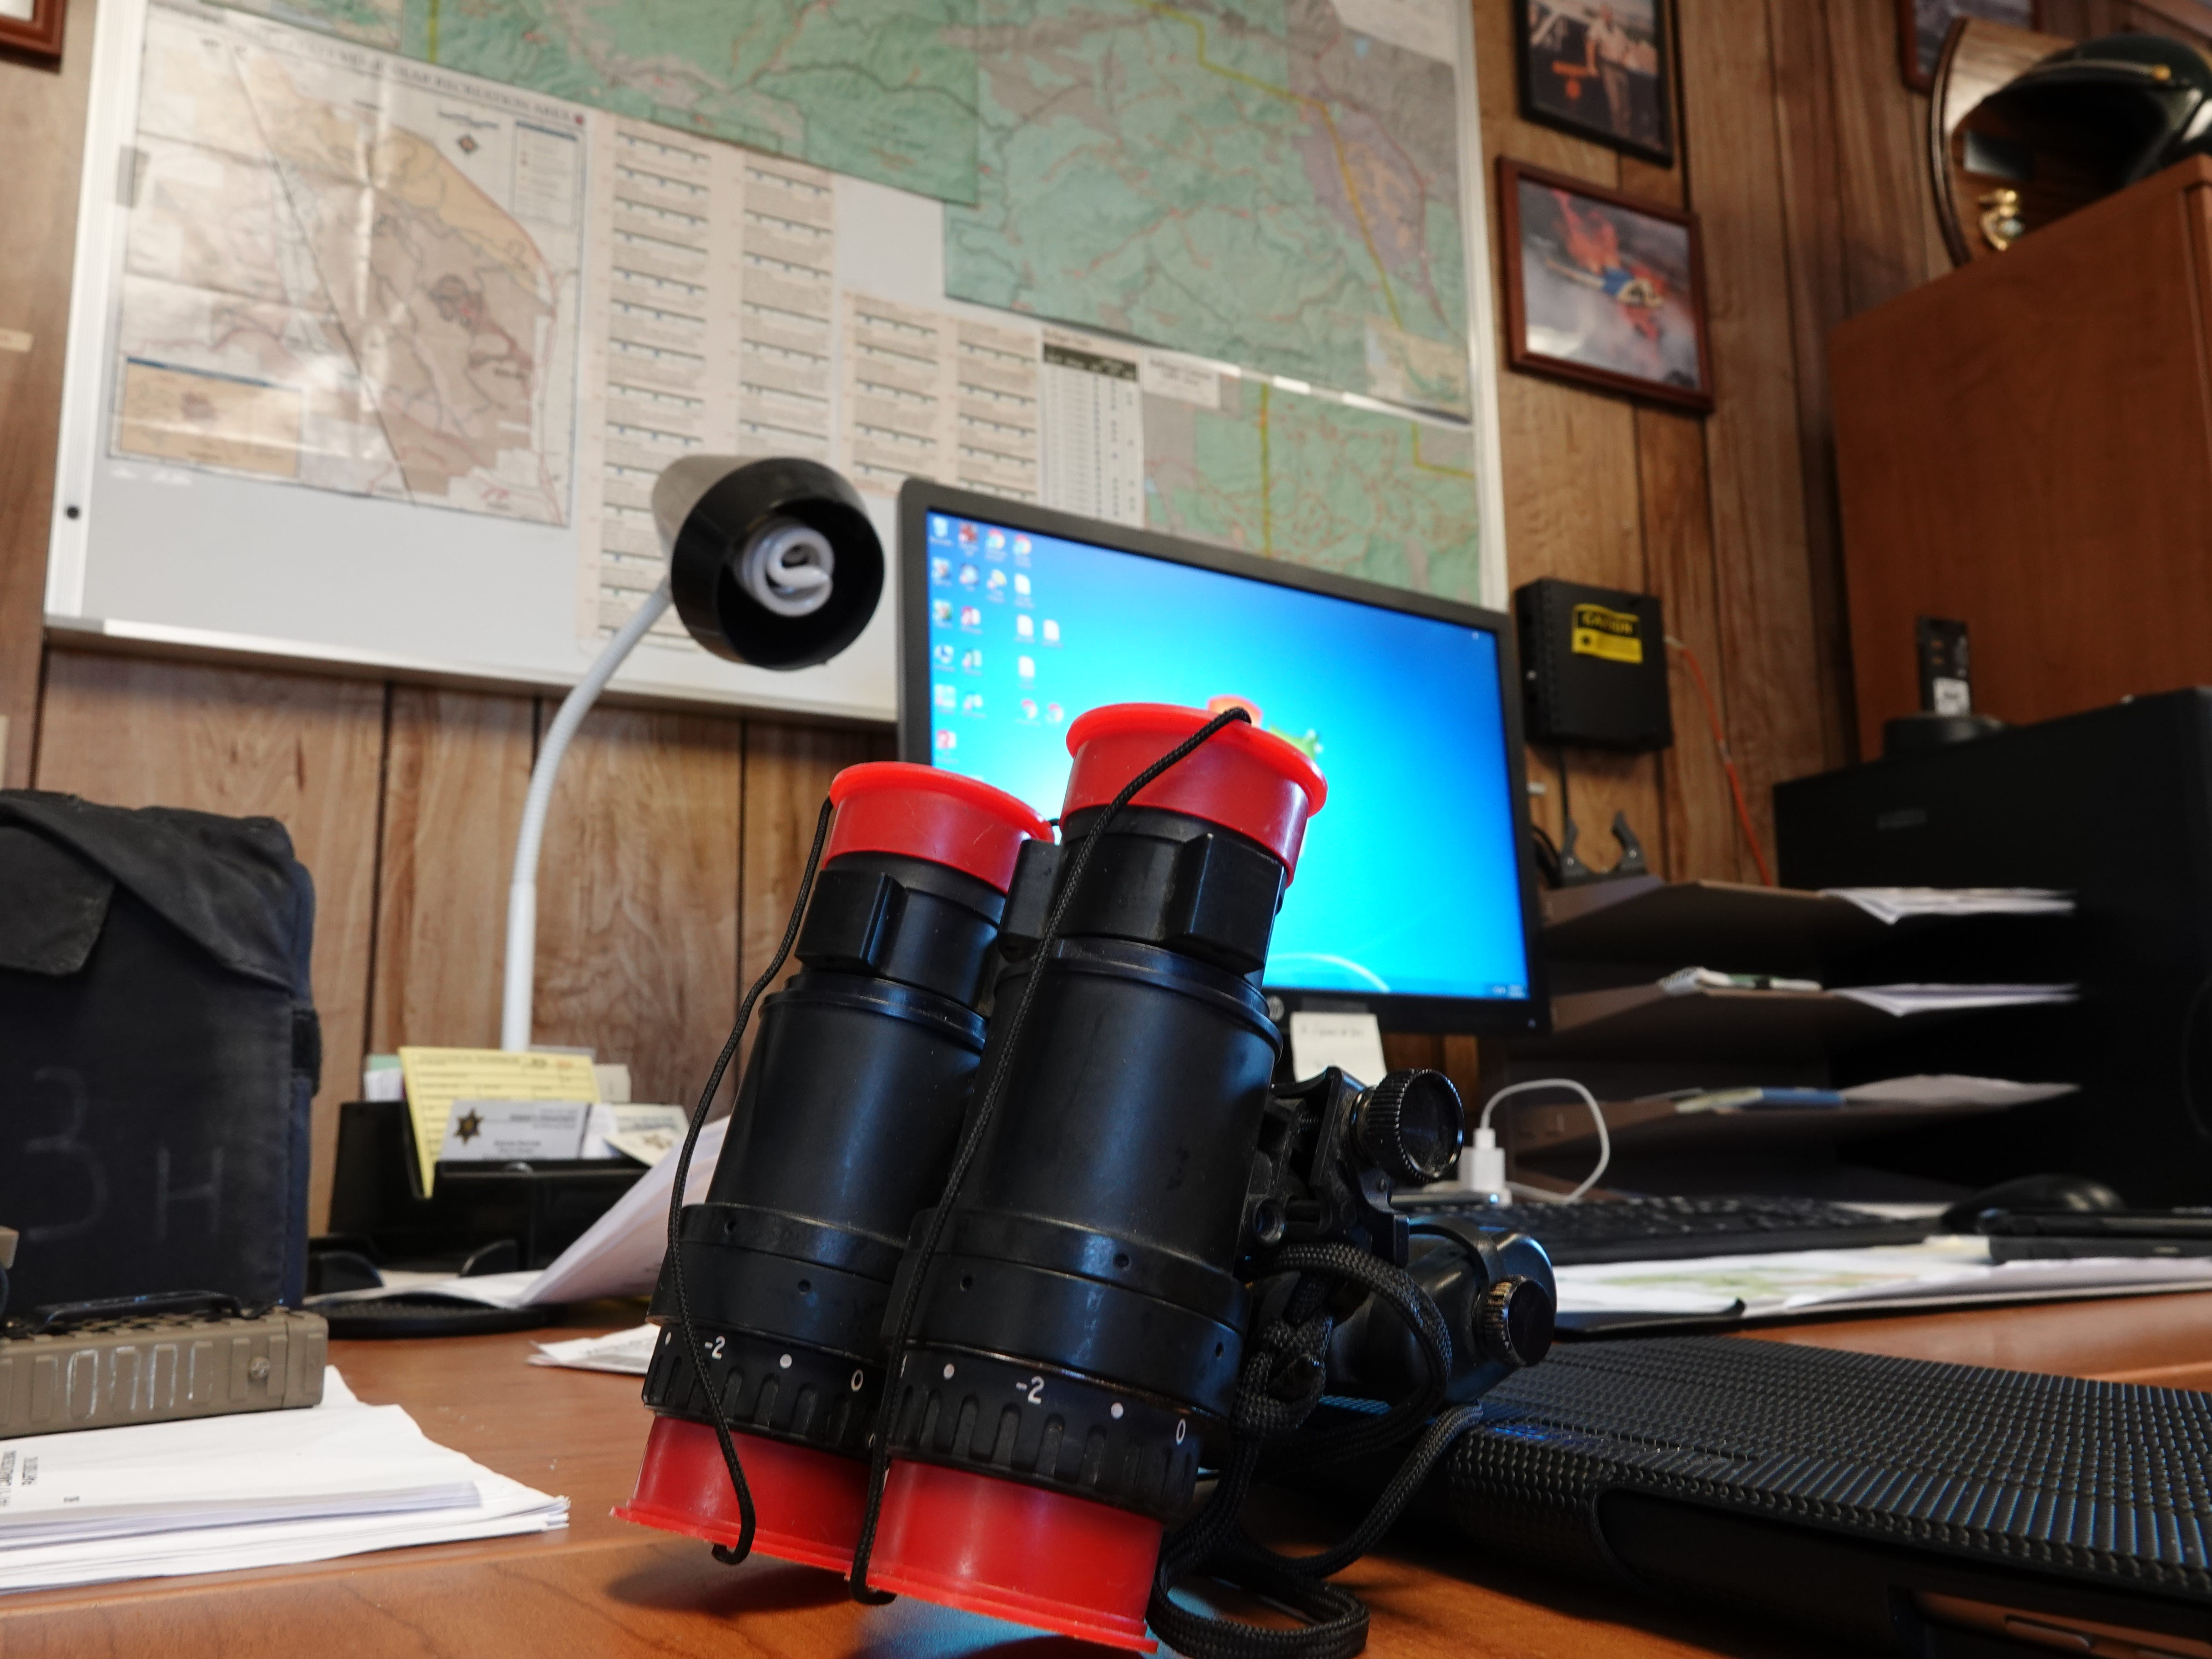 Night-vision goggles sit on a desk at the remote Lockwood Valley substation, where two live-in Ventura County sheriff's deputies oversee 610 square miles of sparsely populated terrain.